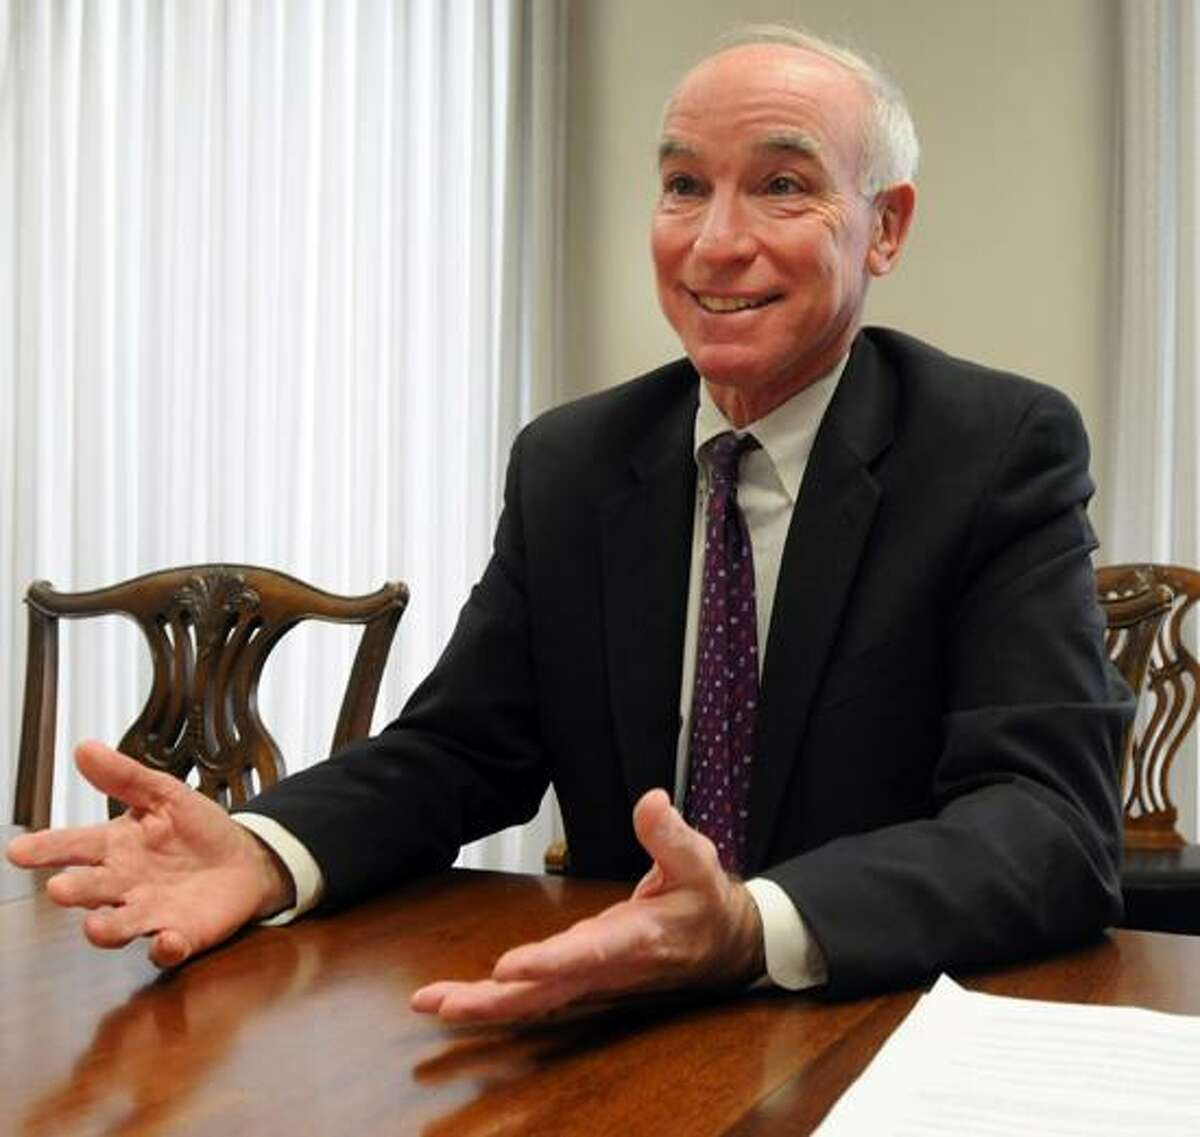 U.S. Rep. Joe Courtney, Democrat representing Connecticut's Second Congressional District, during an interview with the New Haven Register Editorial Board at the New Haven Register. Photo by Peter Hvizdak / New Haven Register